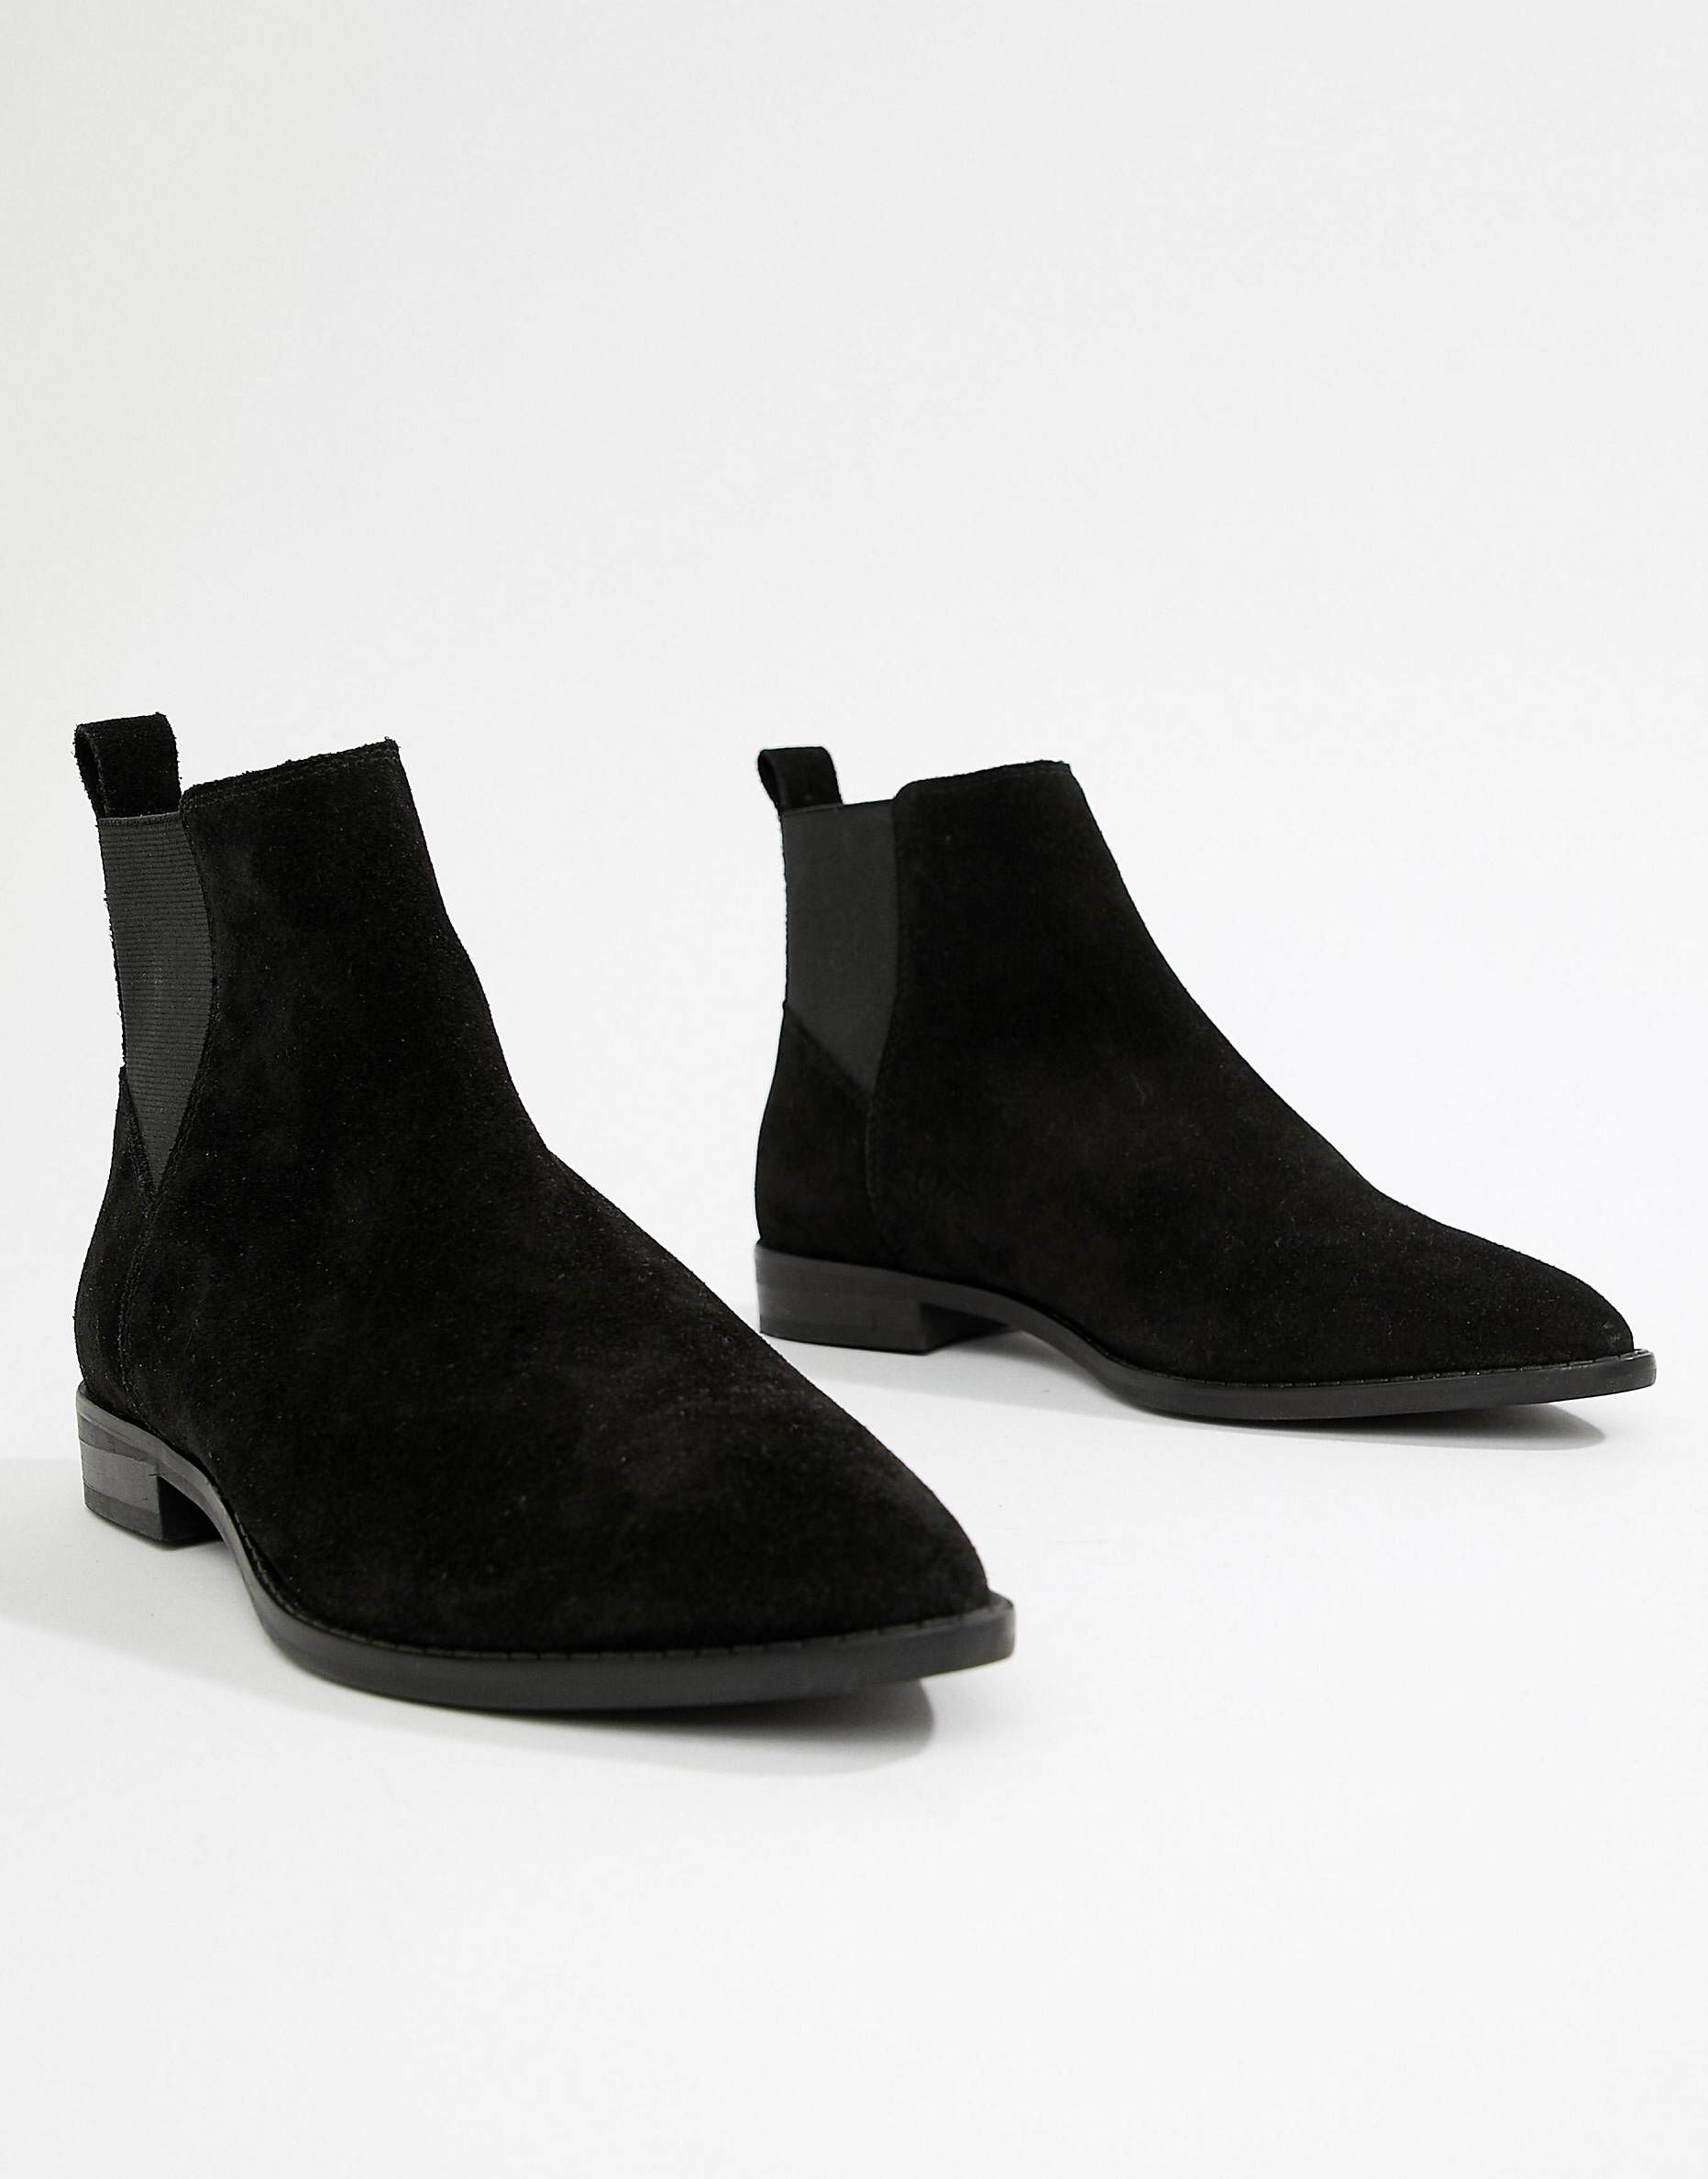 Chelsea boots style, Chelsea ankle boots